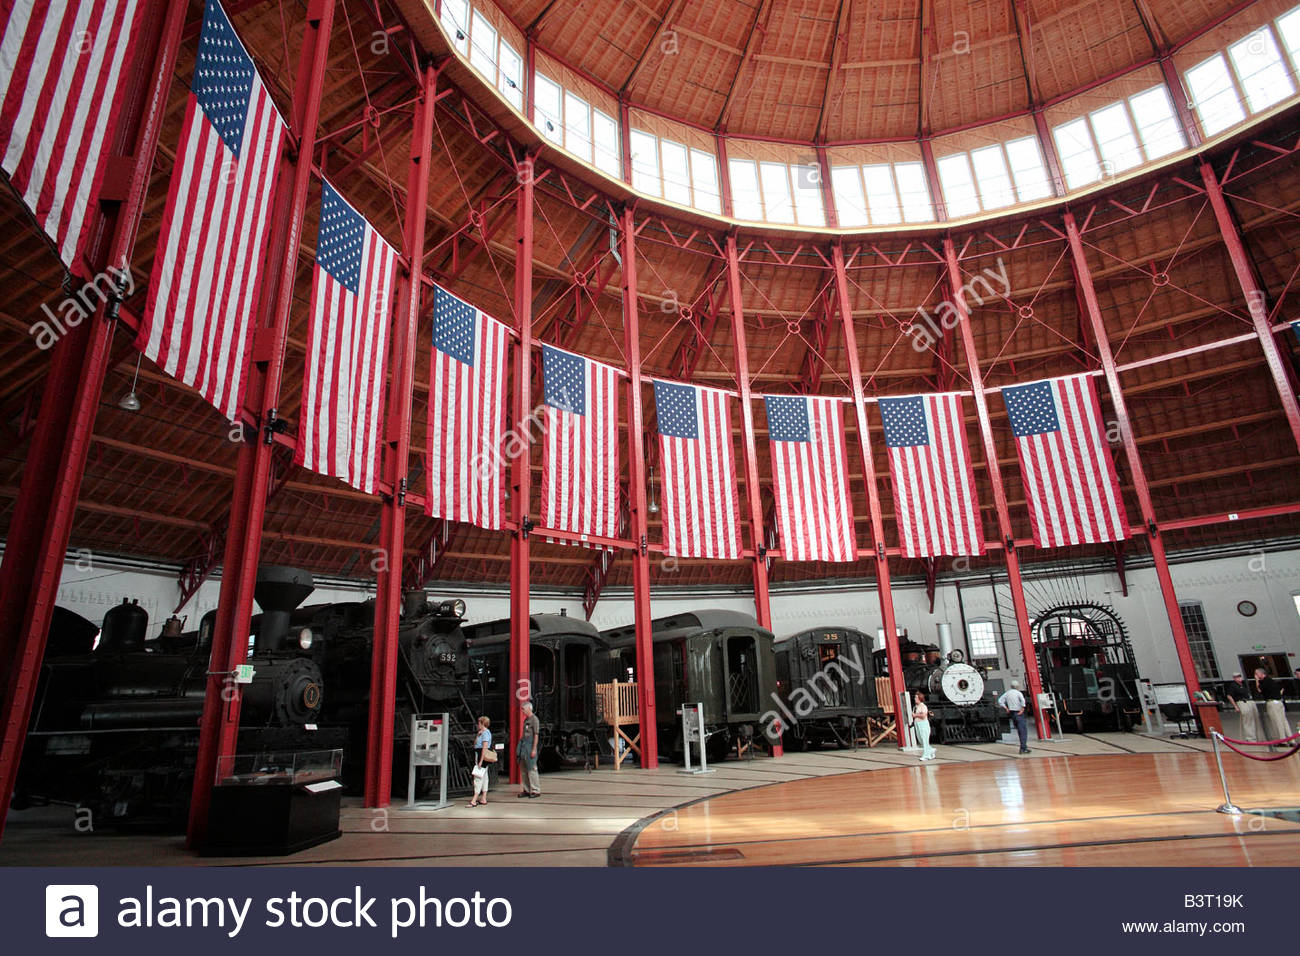 Locomotives and US flags in the roundhouse at the Baltimore and Ohio Railroad Museum in Baltimore Maryland - Stock Image